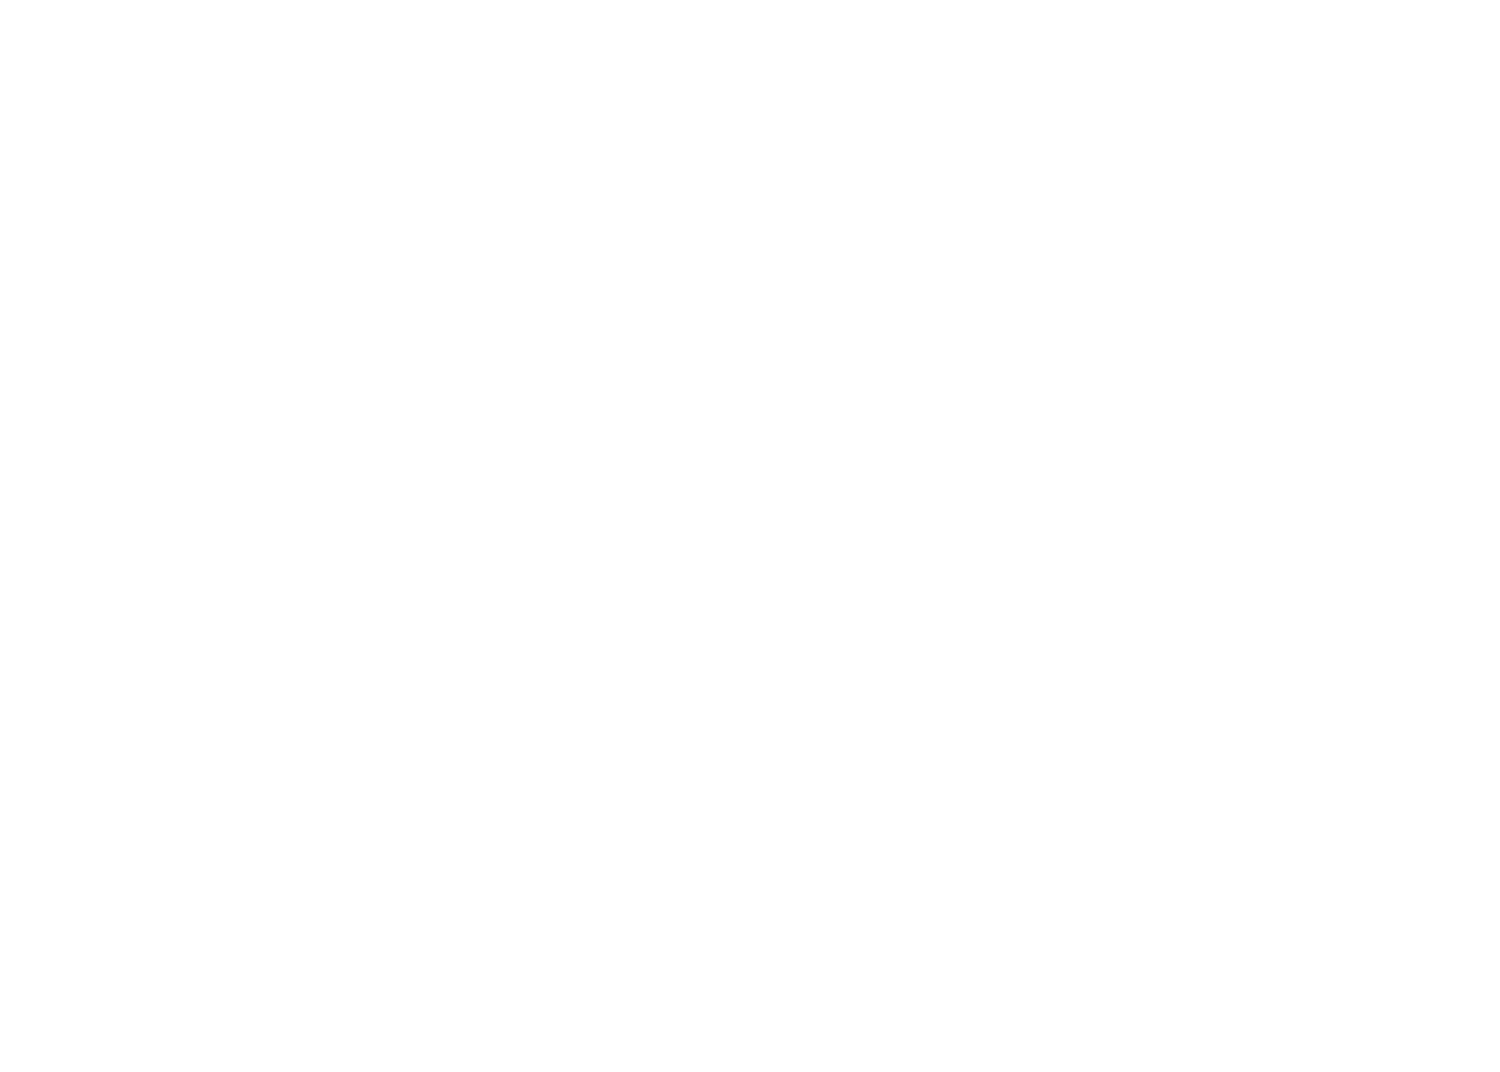 The Story Catchers - Inspireevery1 Productions